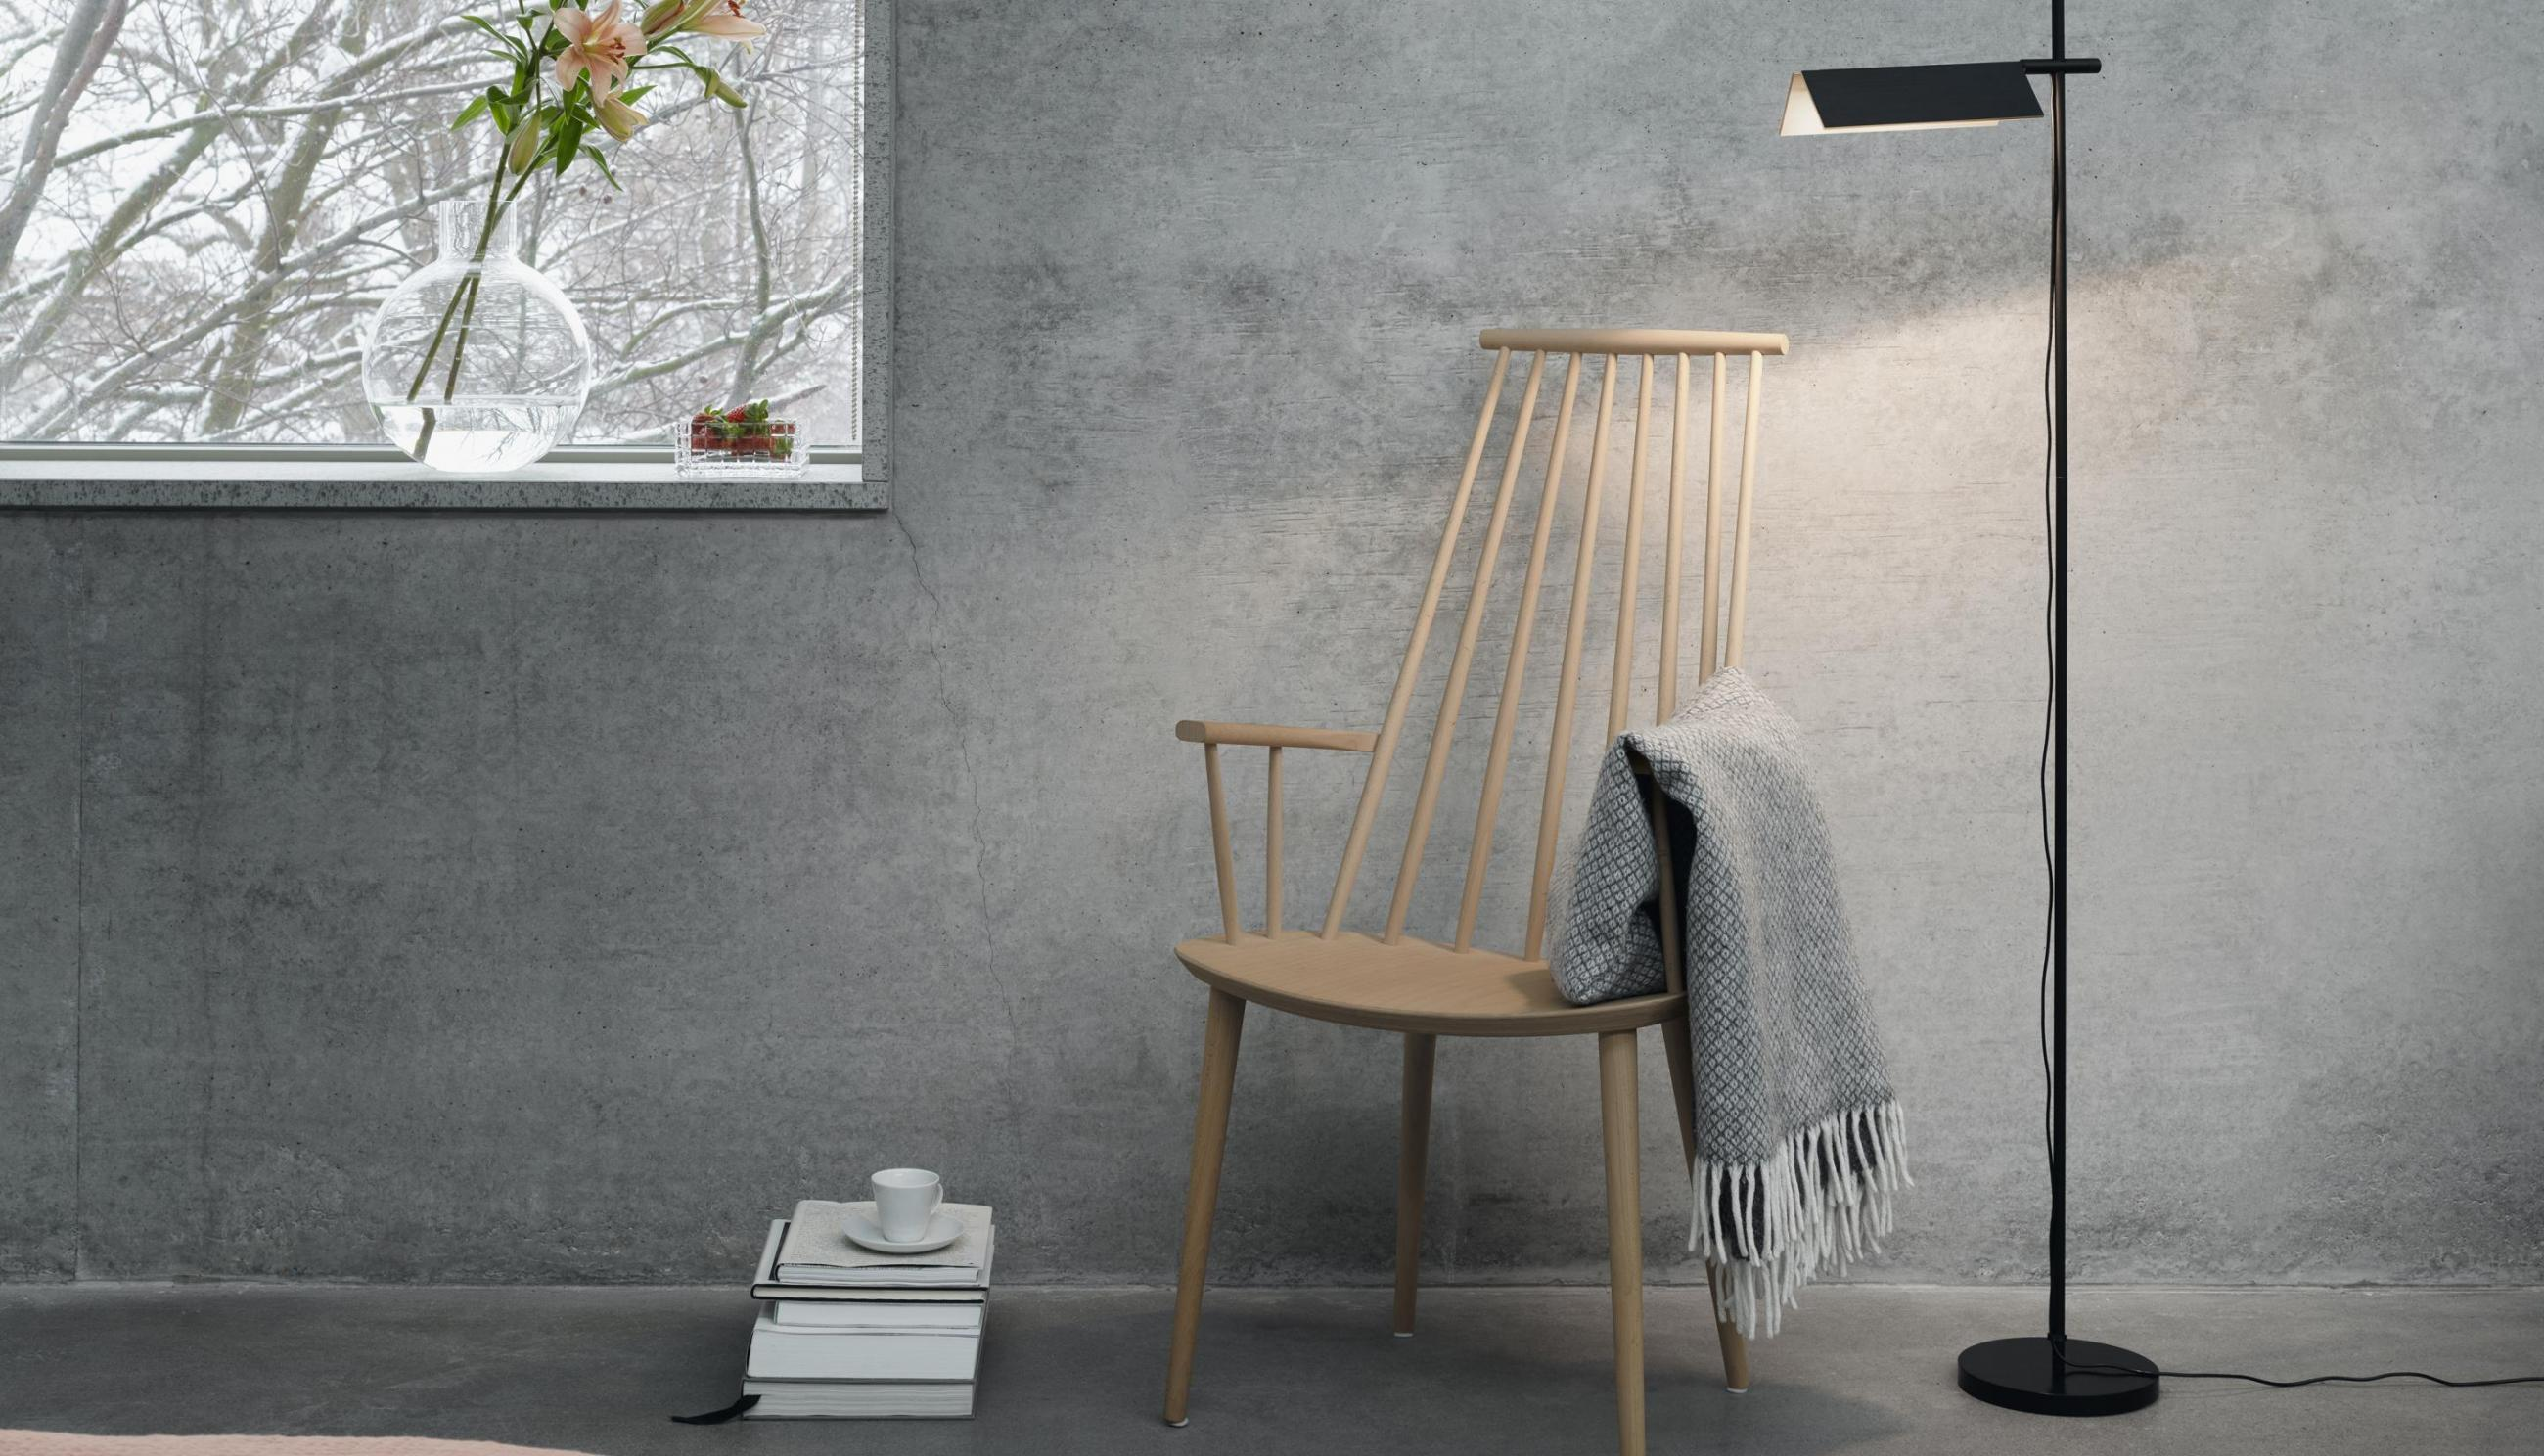 Grey room with rocking chair, blanket and a floor lamp